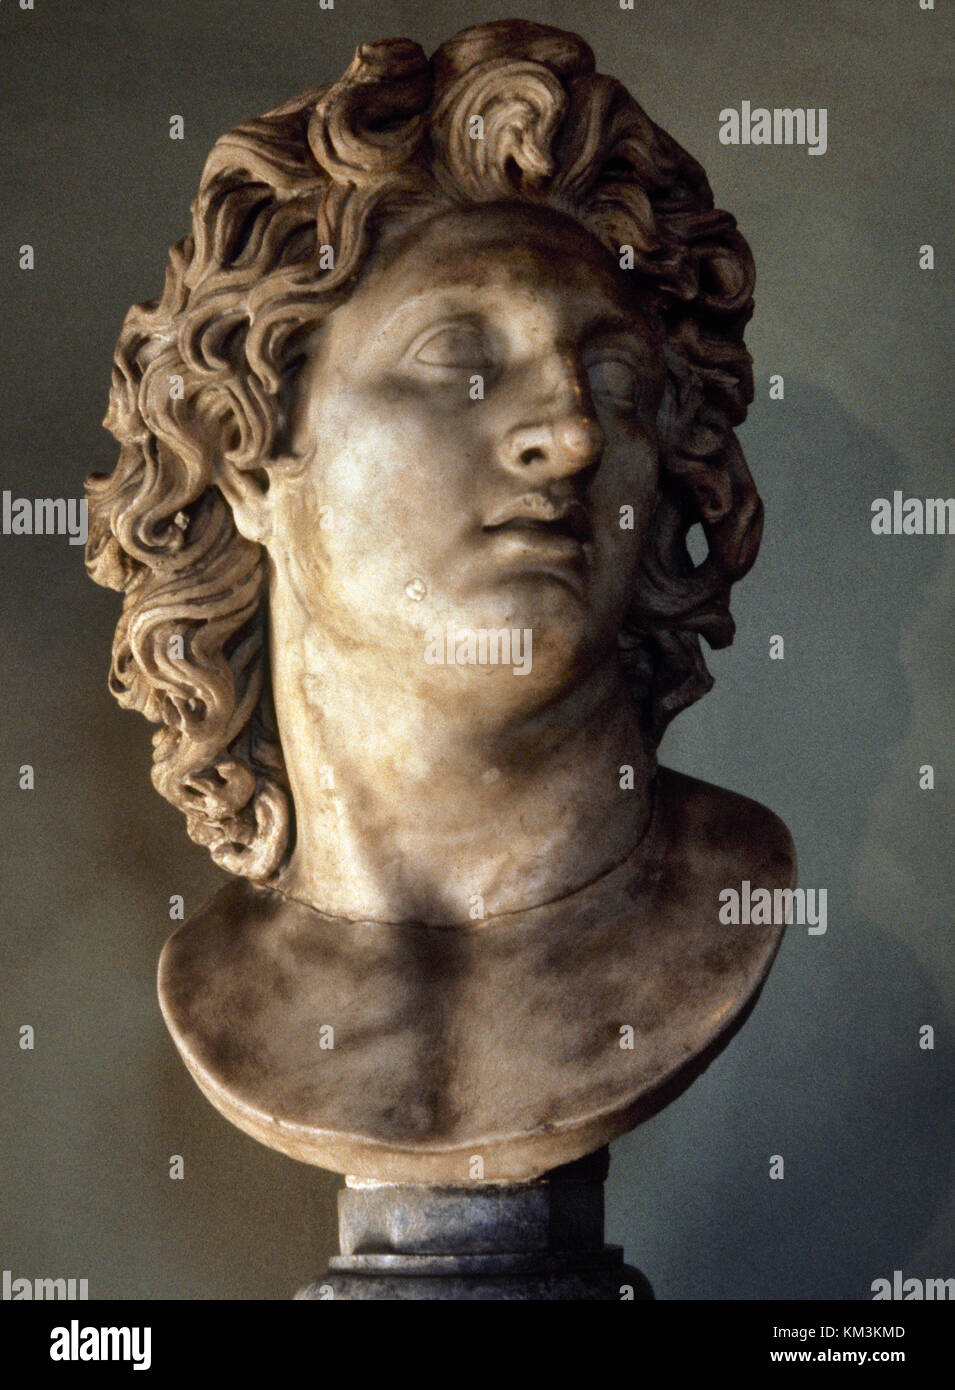 Alexander the Great (356-323 BC). King of Madedon. Bust of Alexander as the god Helios. Copy of original by Chares - Stock Image